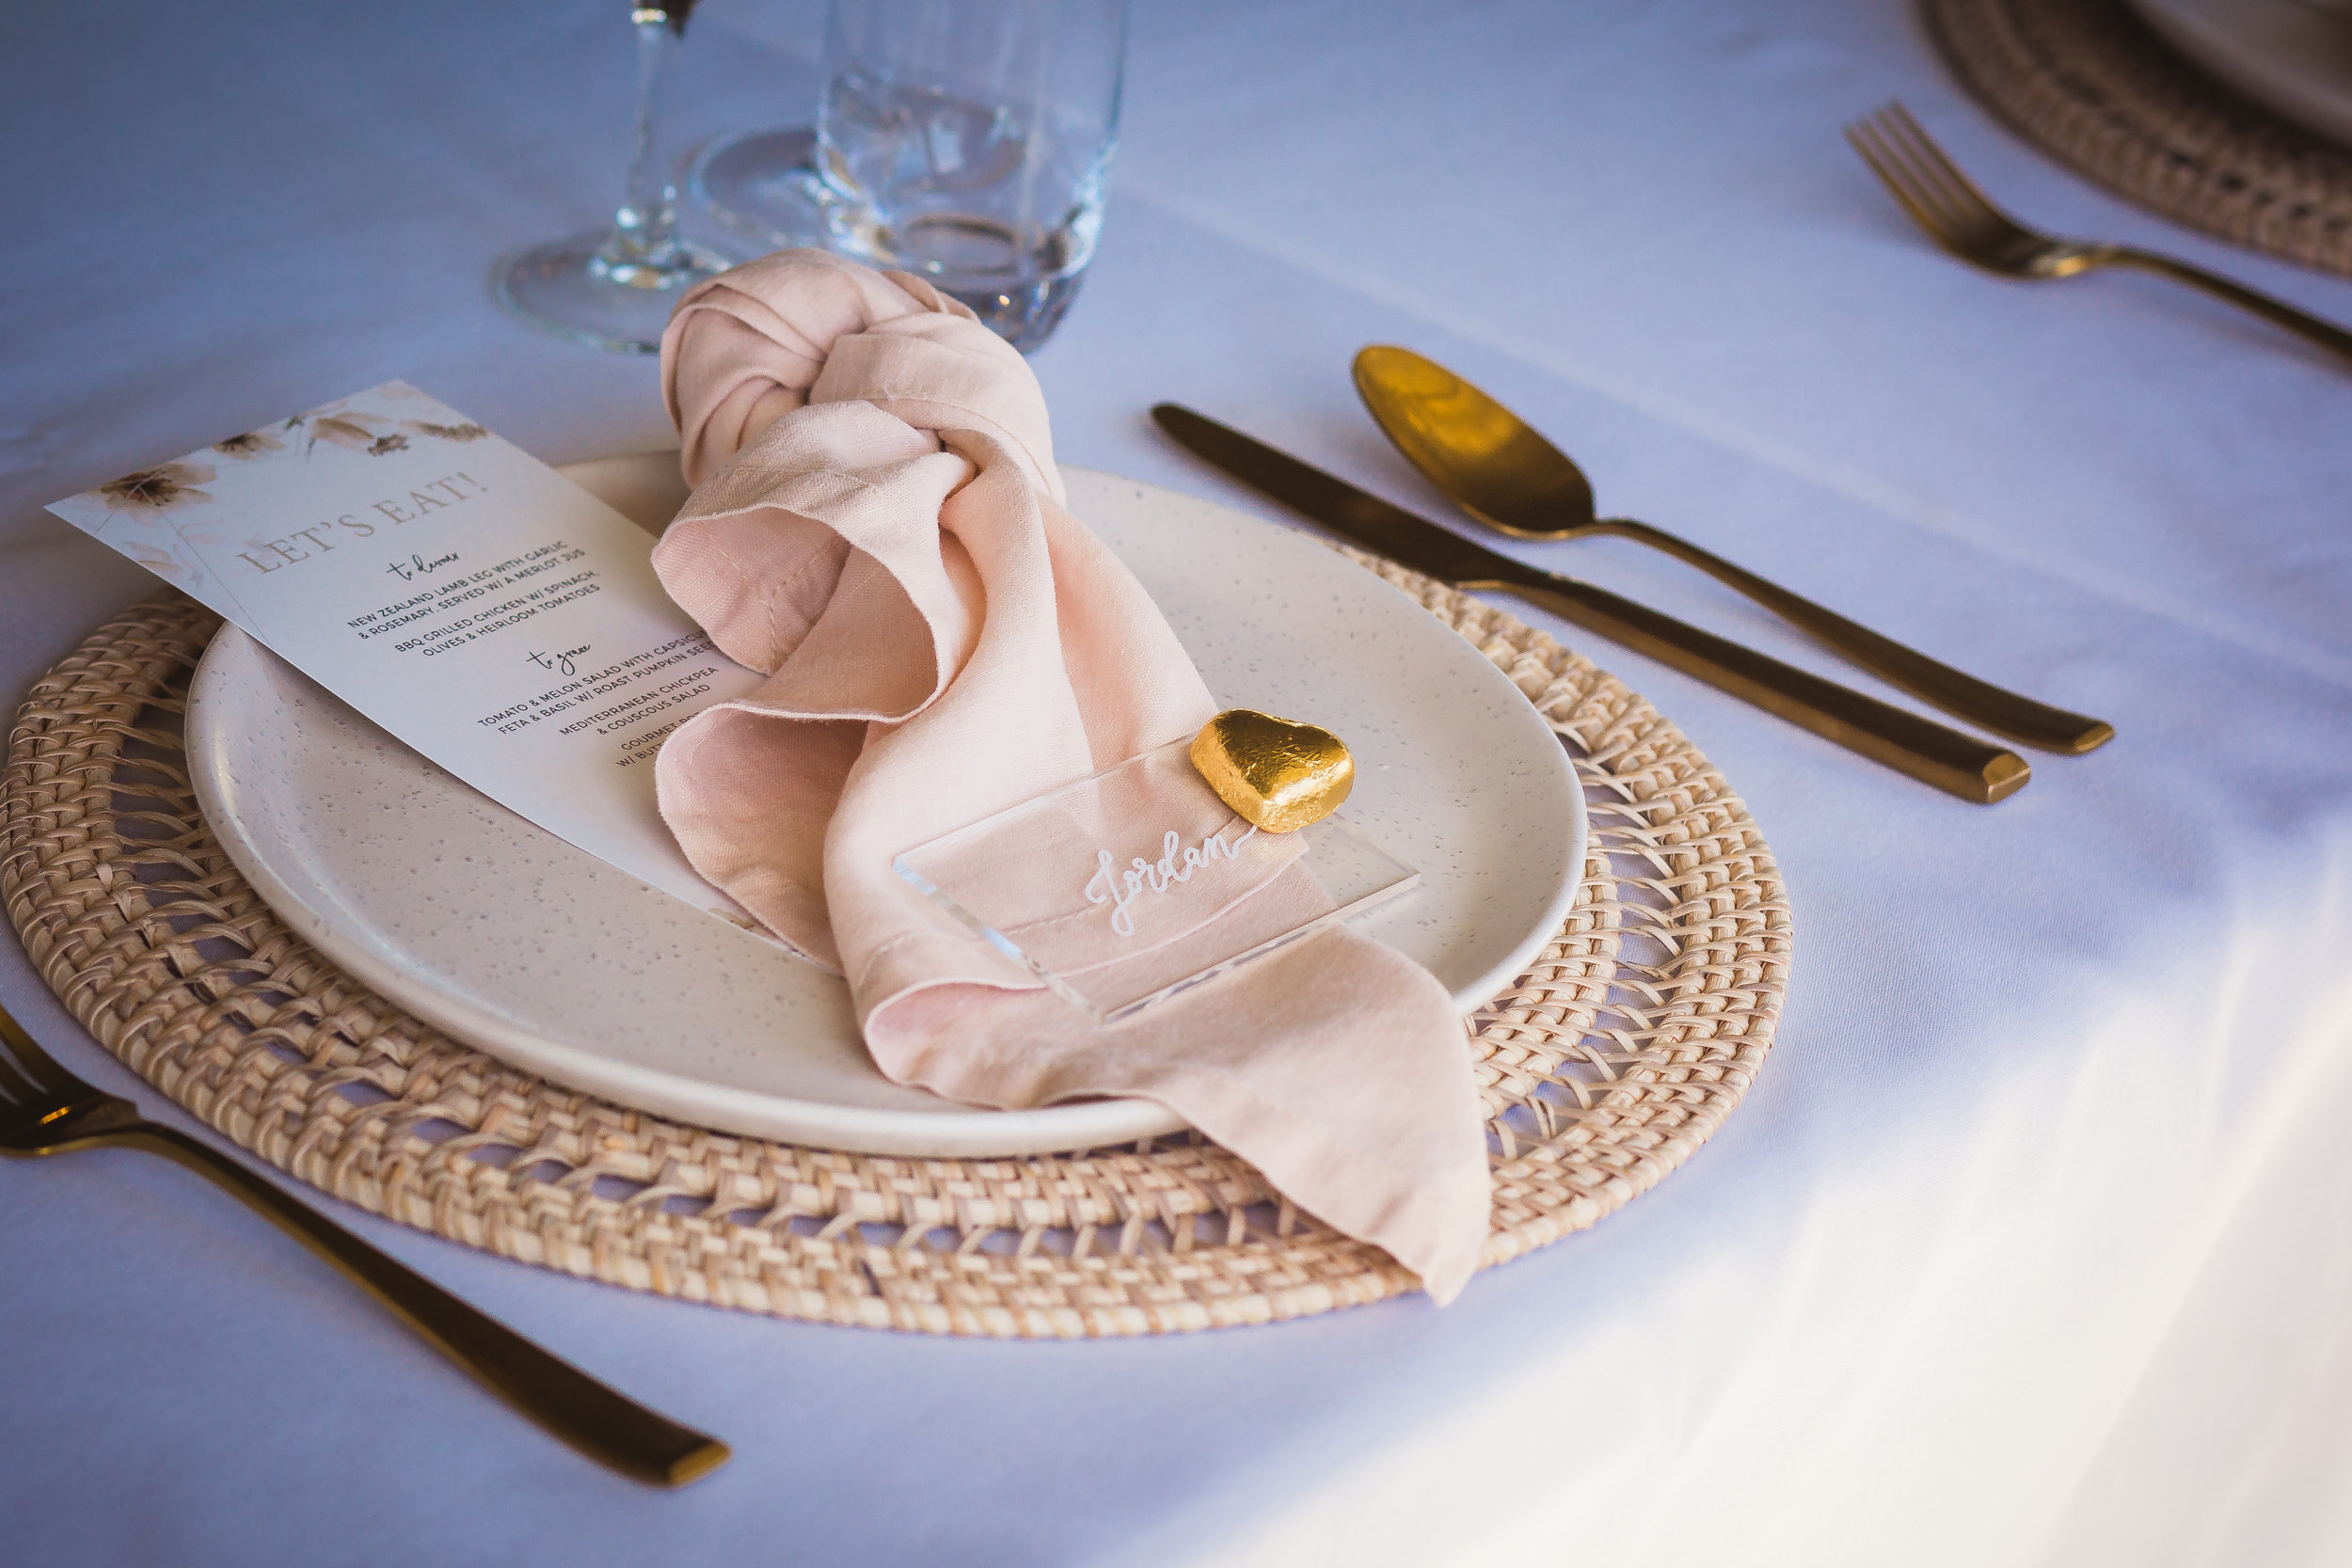 Hire this look with our    gold cutlery    &    speckled dinner plates